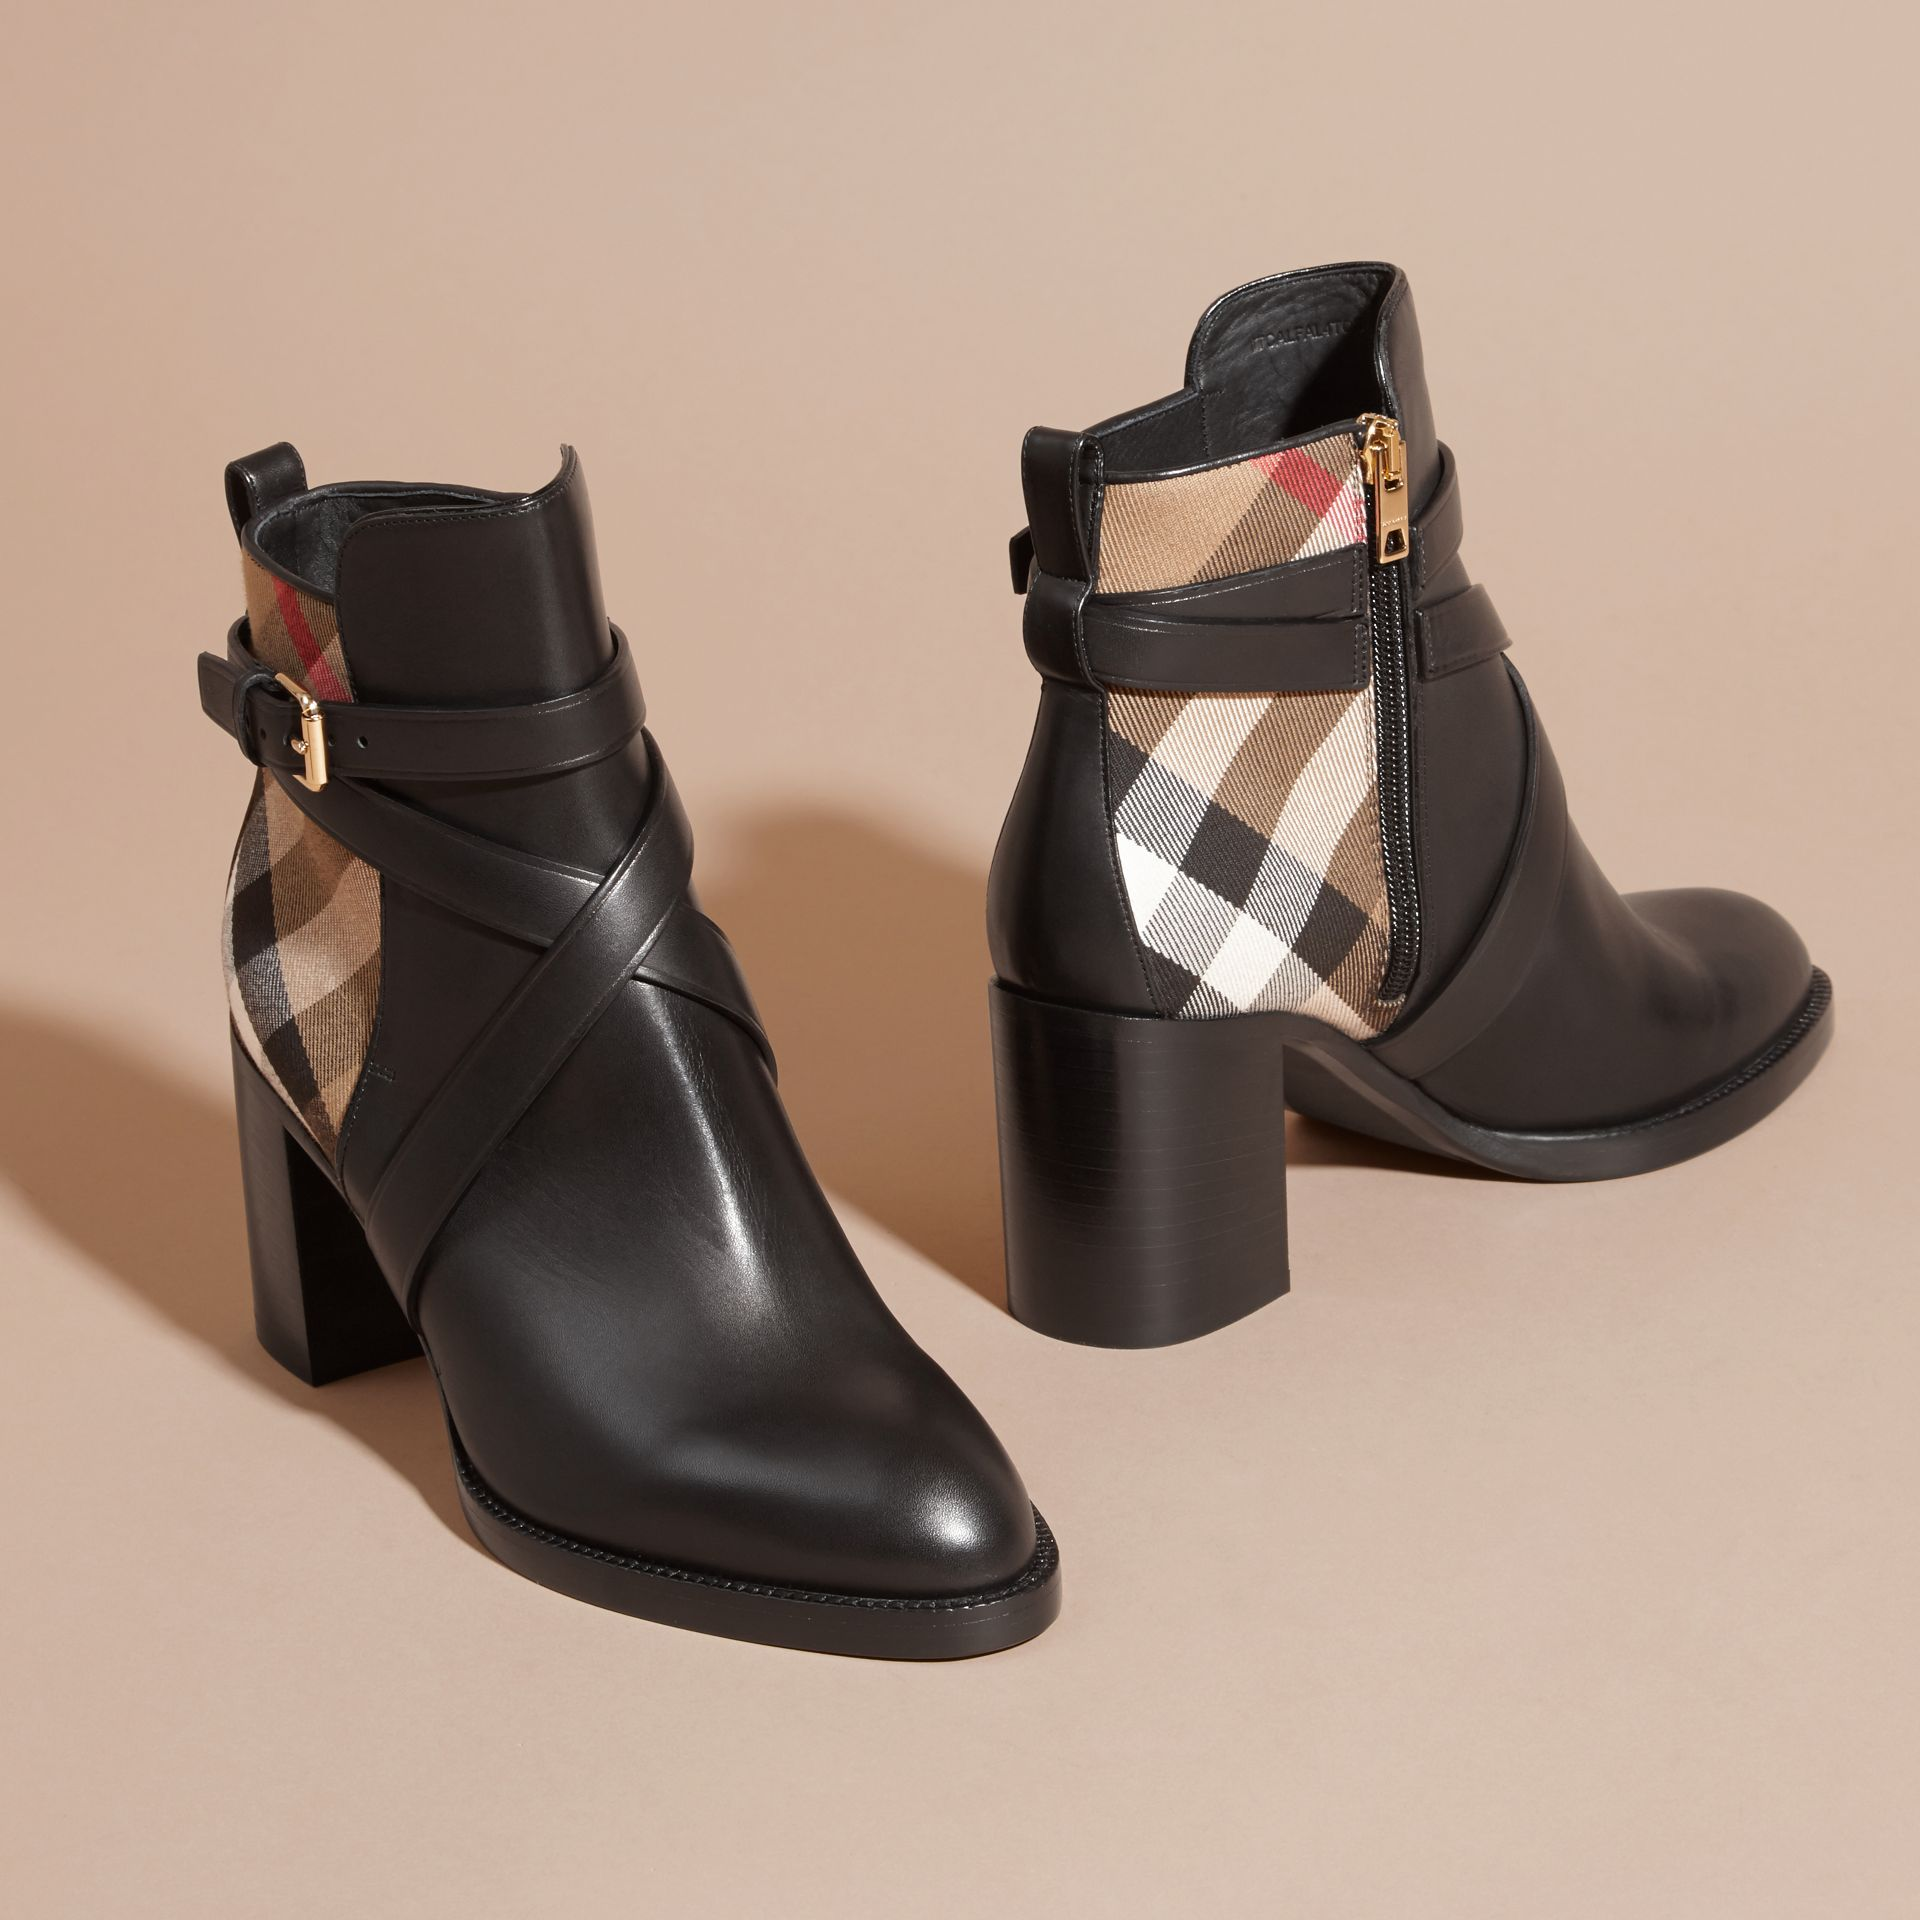 Bottines en cuir et coton House check (Noir) - Femme | Burberry Canada - photo de la galerie 2